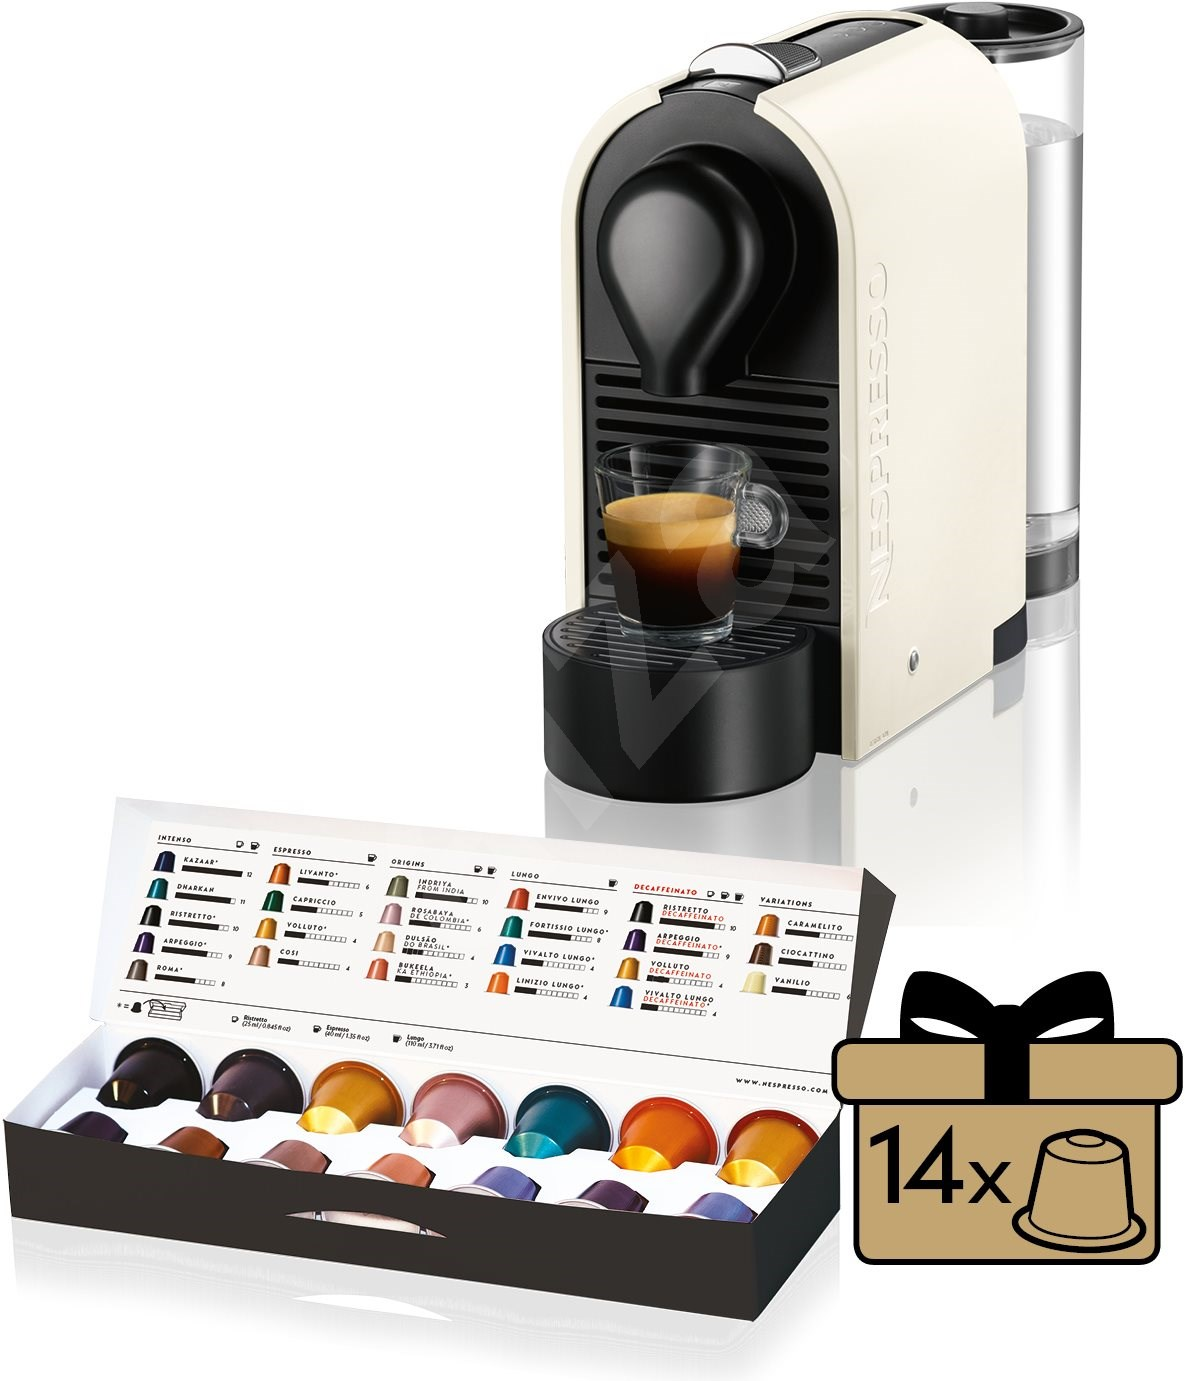 nespresso krups u xn250110 kapsel kaffeemaschine. Black Bedroom Furniture Sets. Home Design Ideas